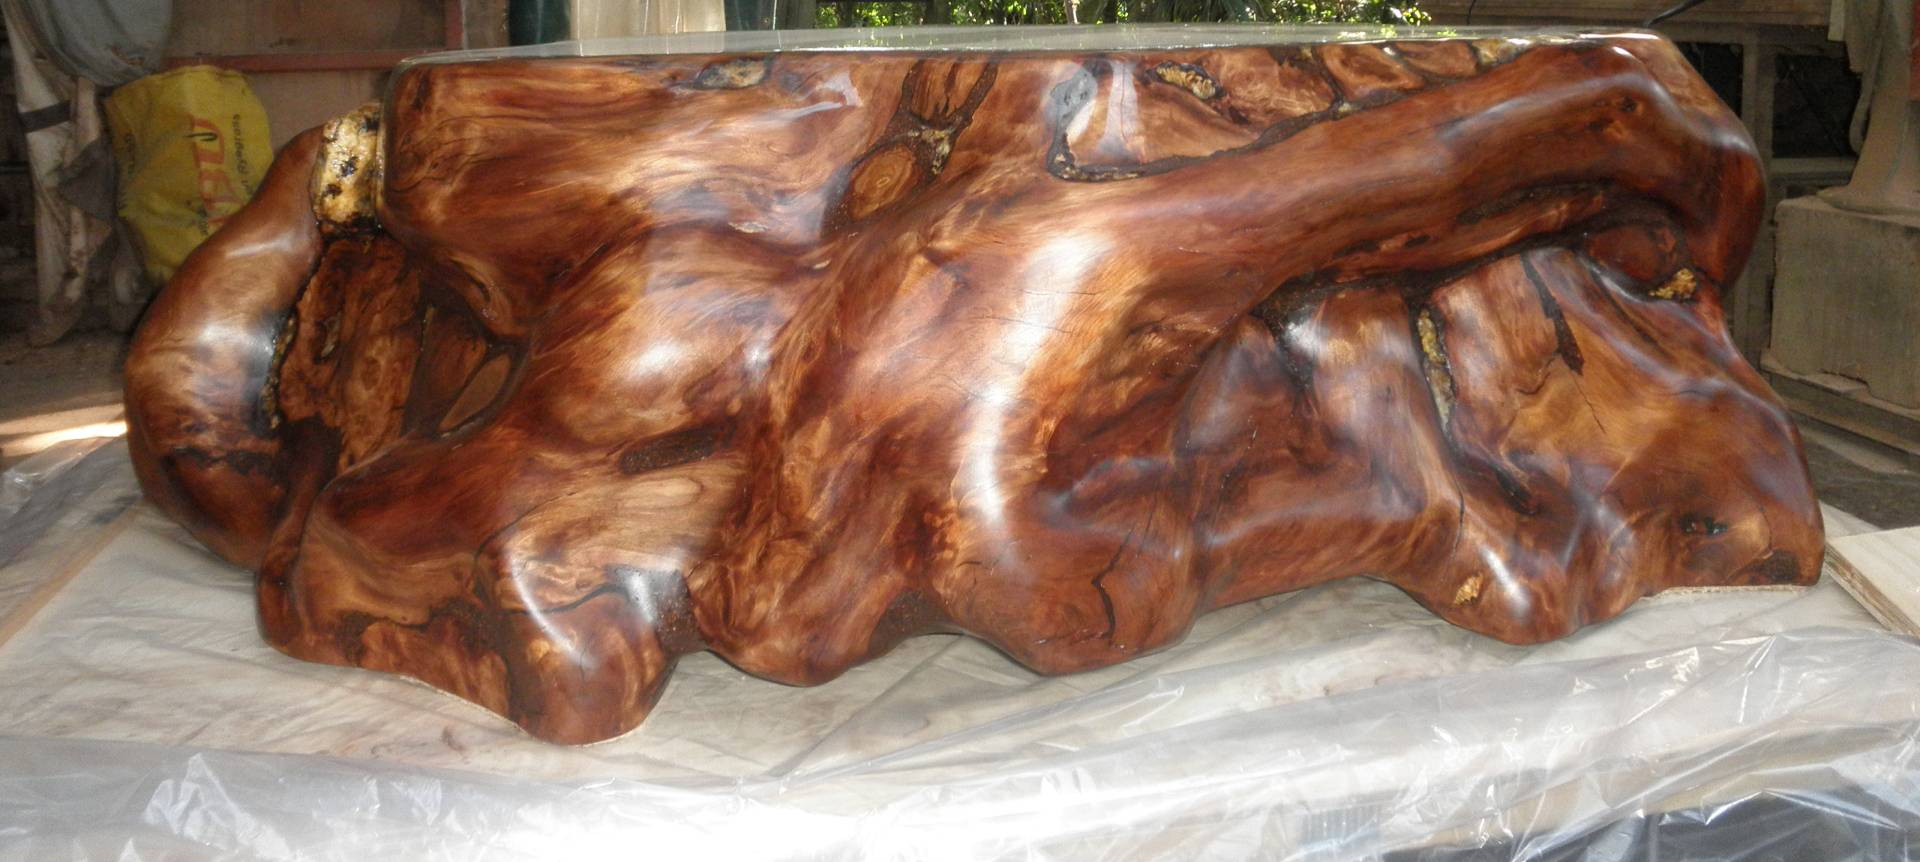 A coffee table from Kauri Craft and Furniture